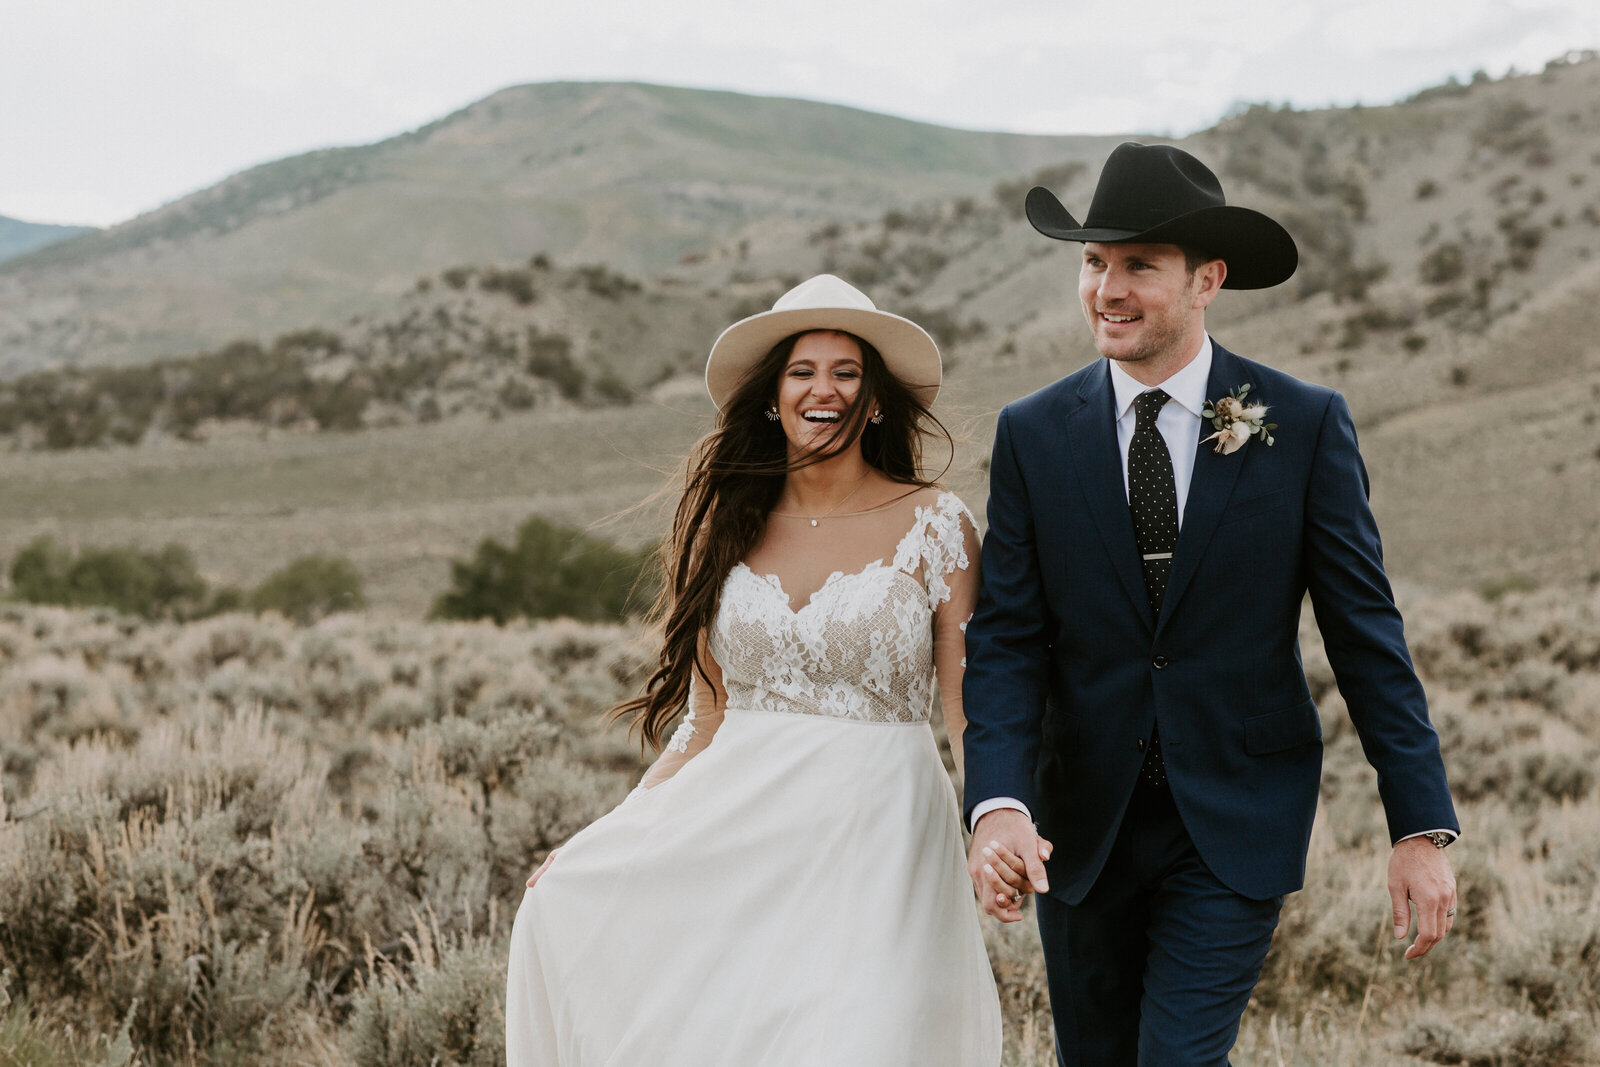 20200619  Vali Wedding Photos  Colorado  Wedding Photographer - Catherine Lea Photography1